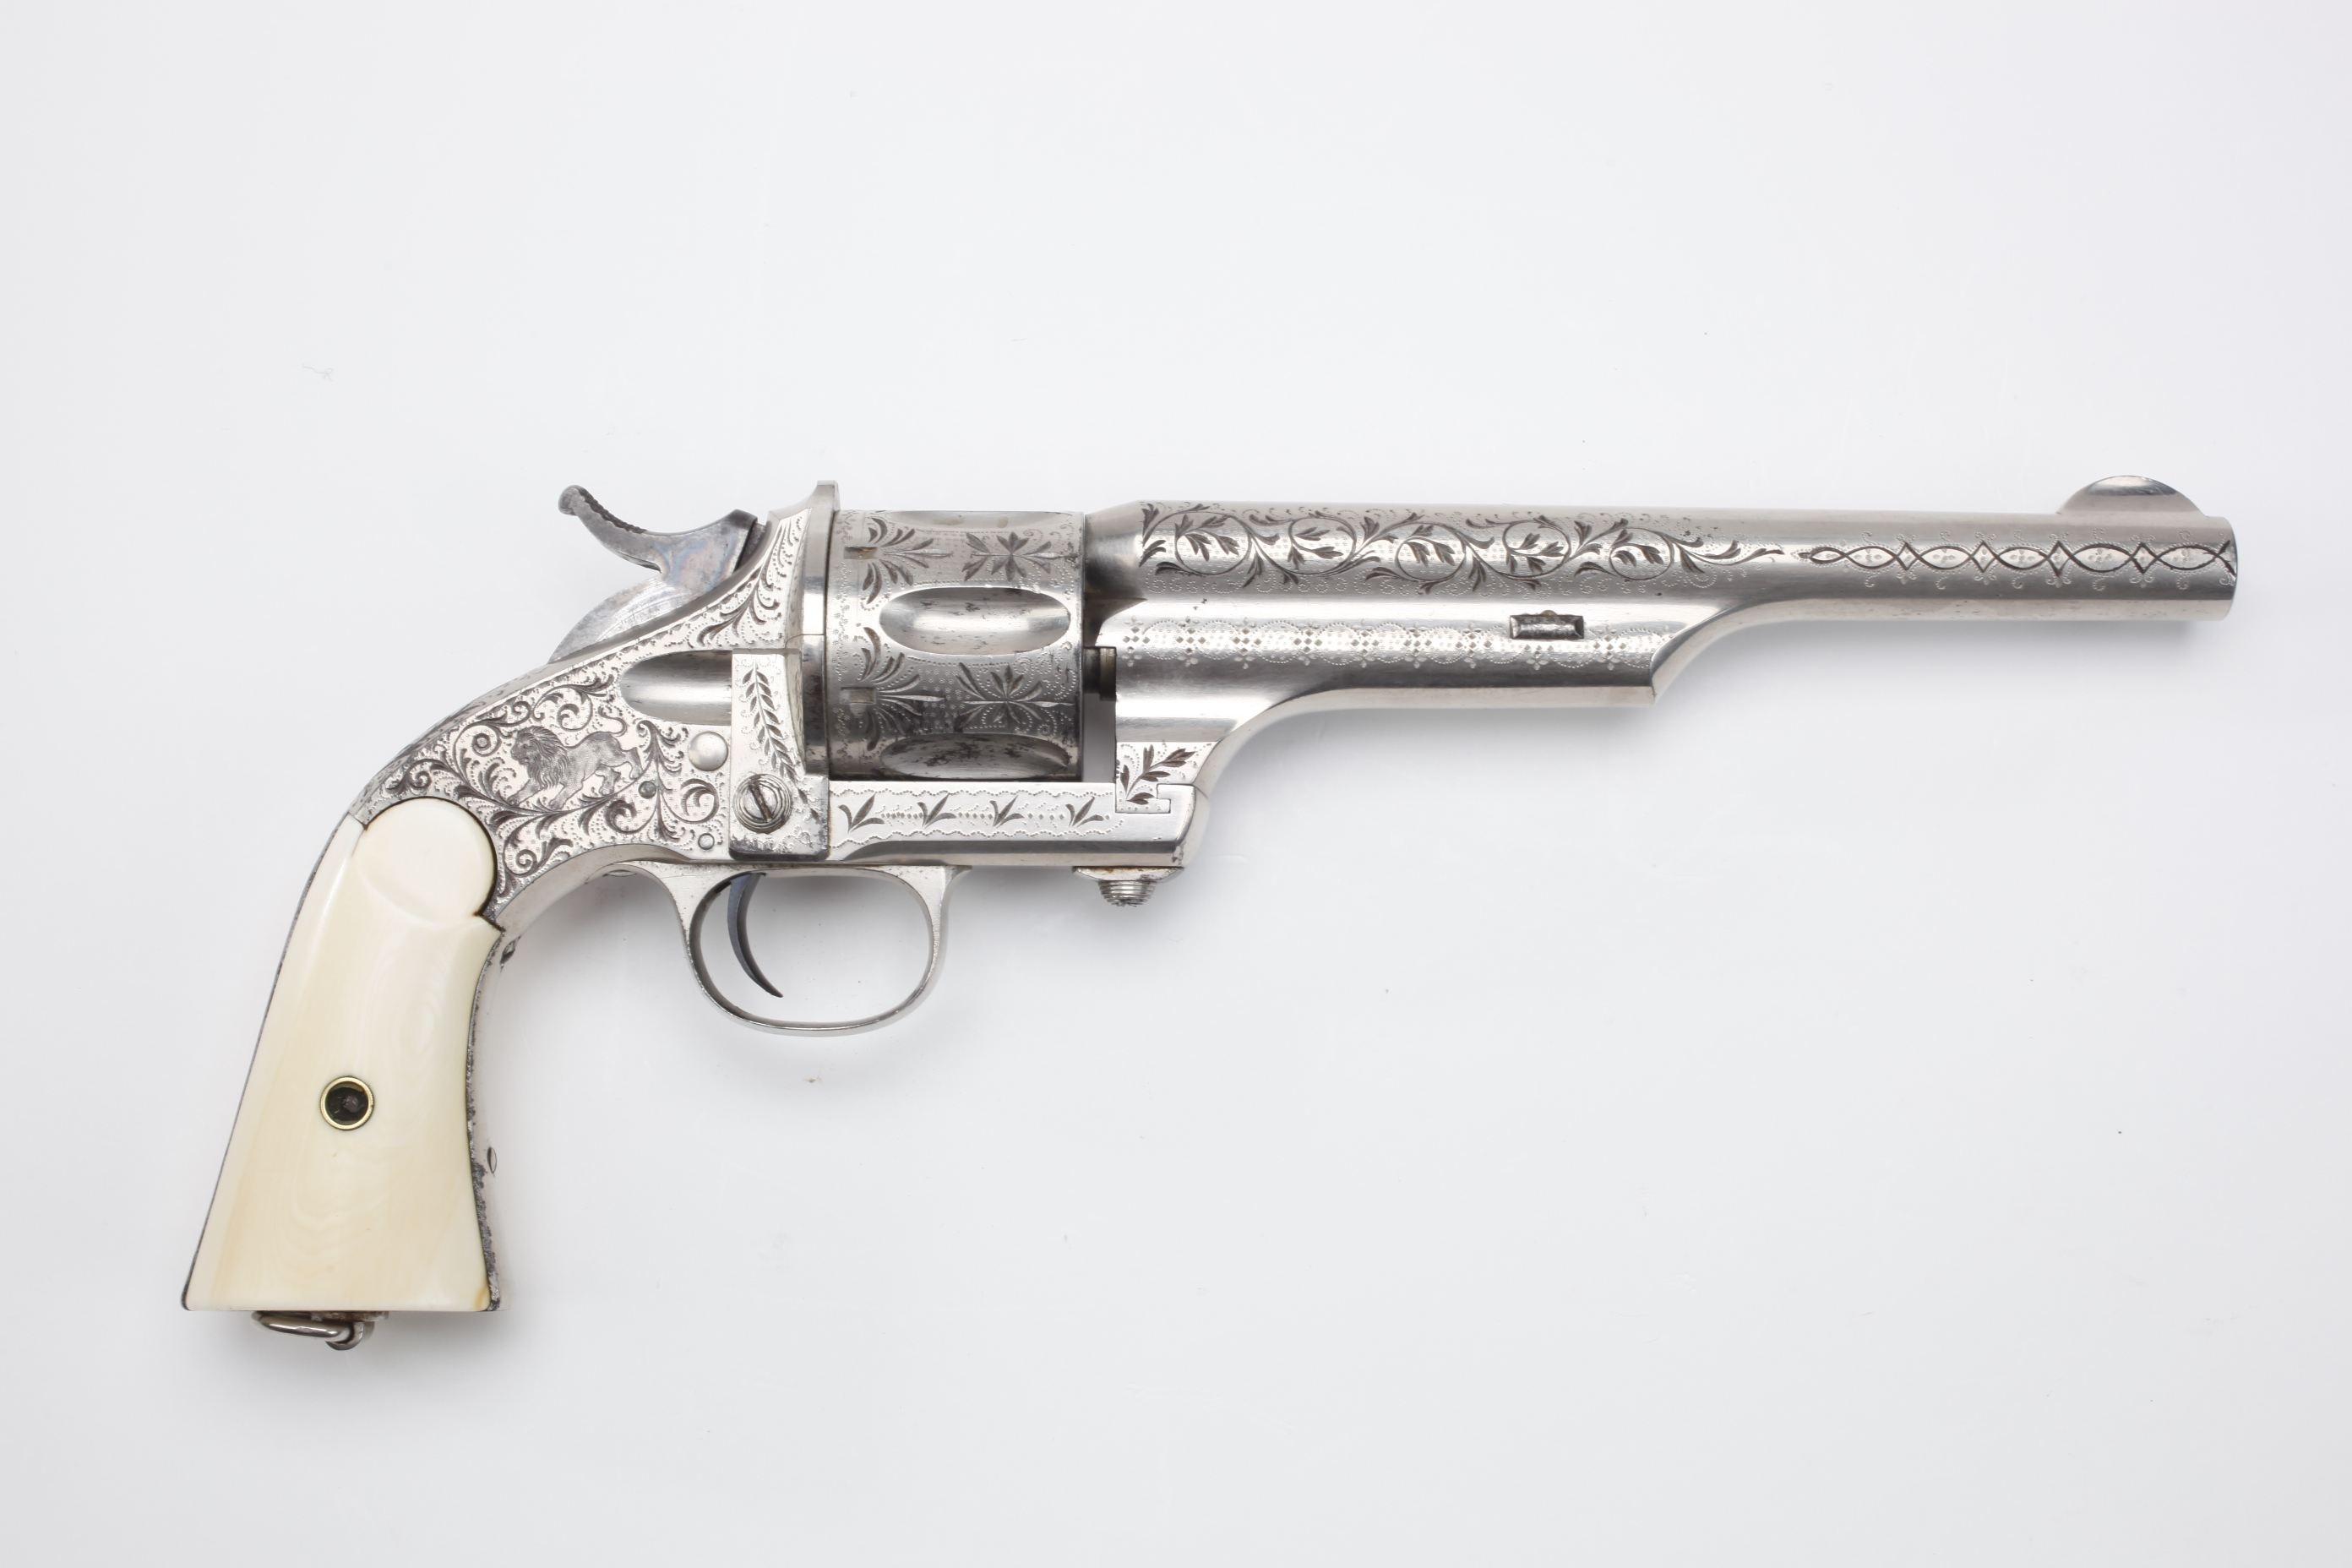 Merwin Hulbert & Co Single Action Army Revolver